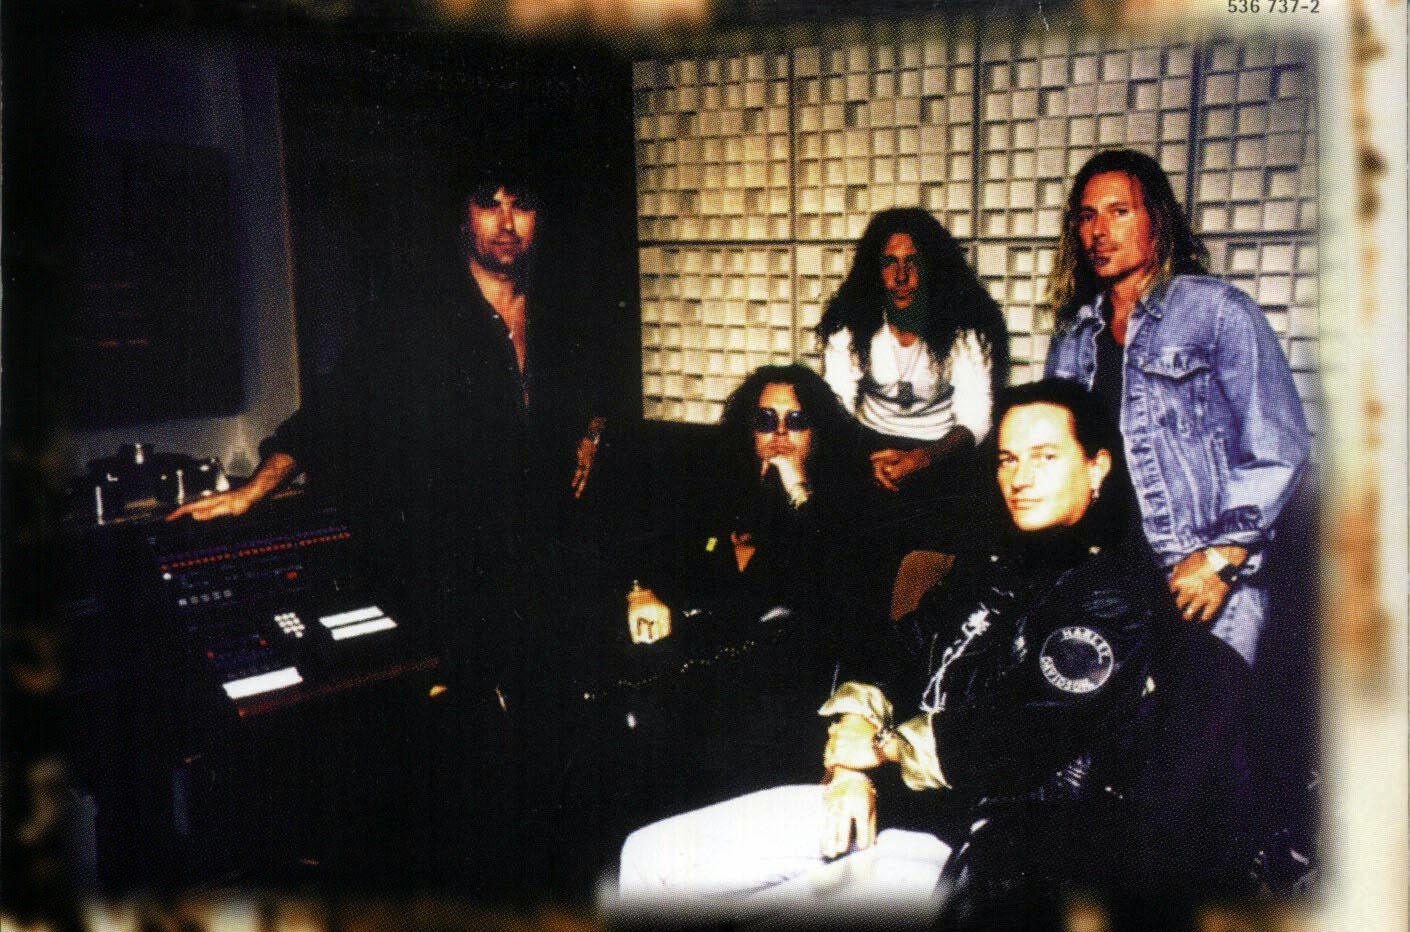 Formación de Yngwie Malmsteen-Facing the Animal